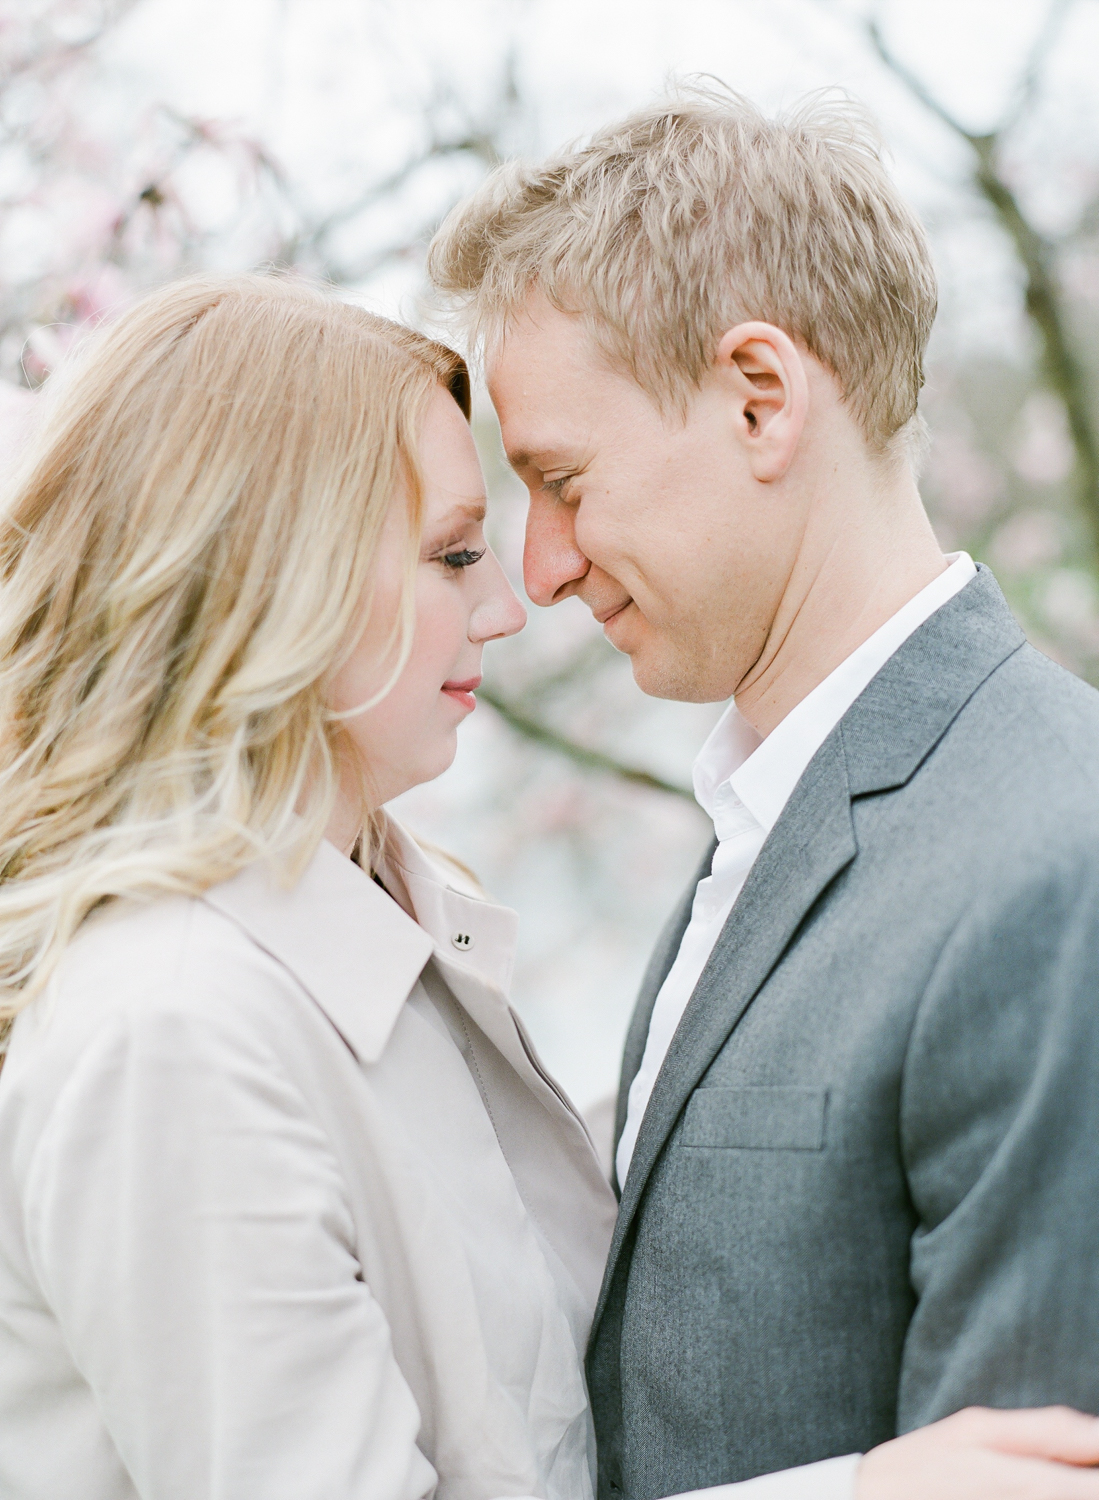 Jacqueline Anne Photography - Amanda and Brent-65.jpg